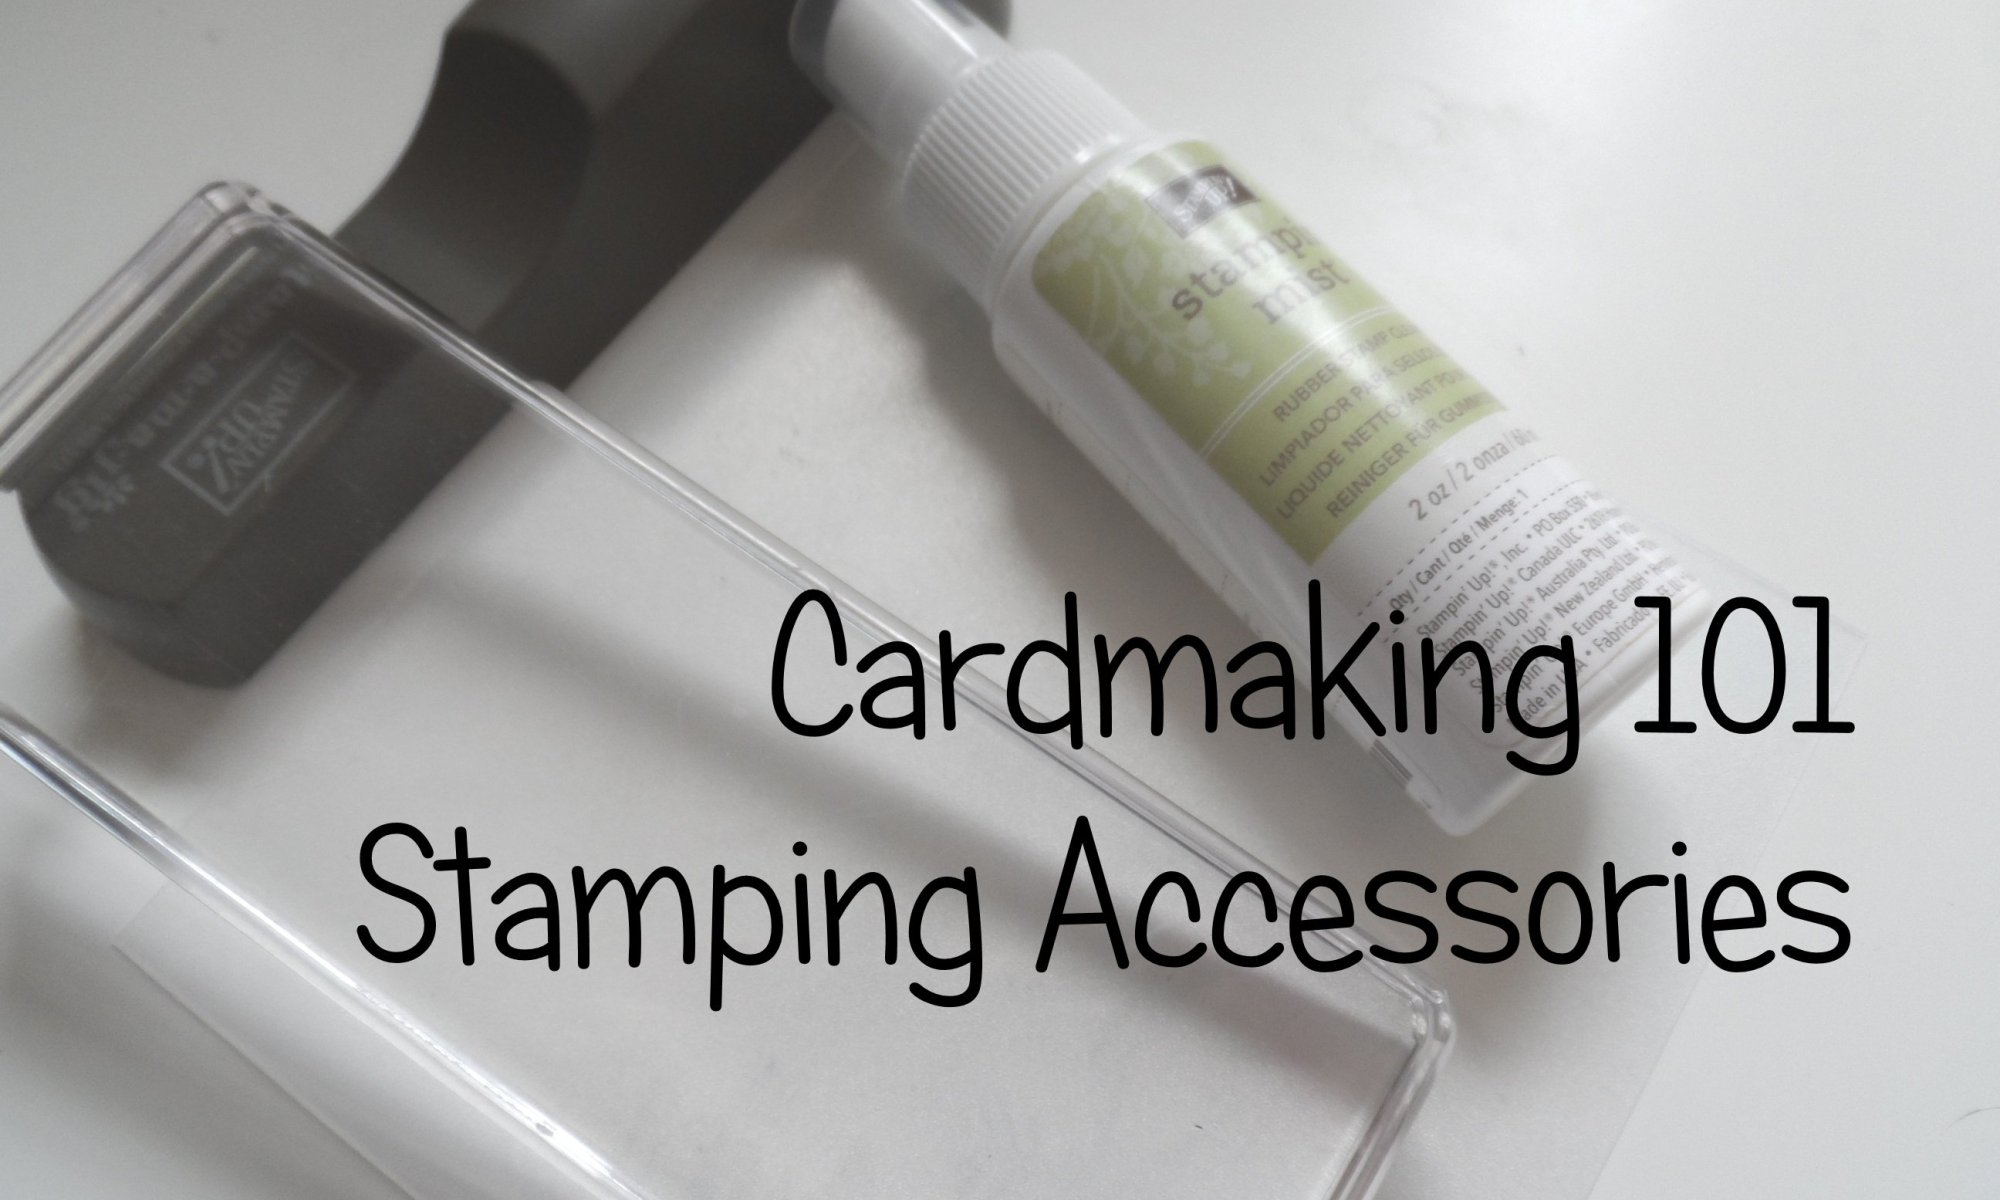 Stampin' Up! UK cardmaking 101 stamping accessories